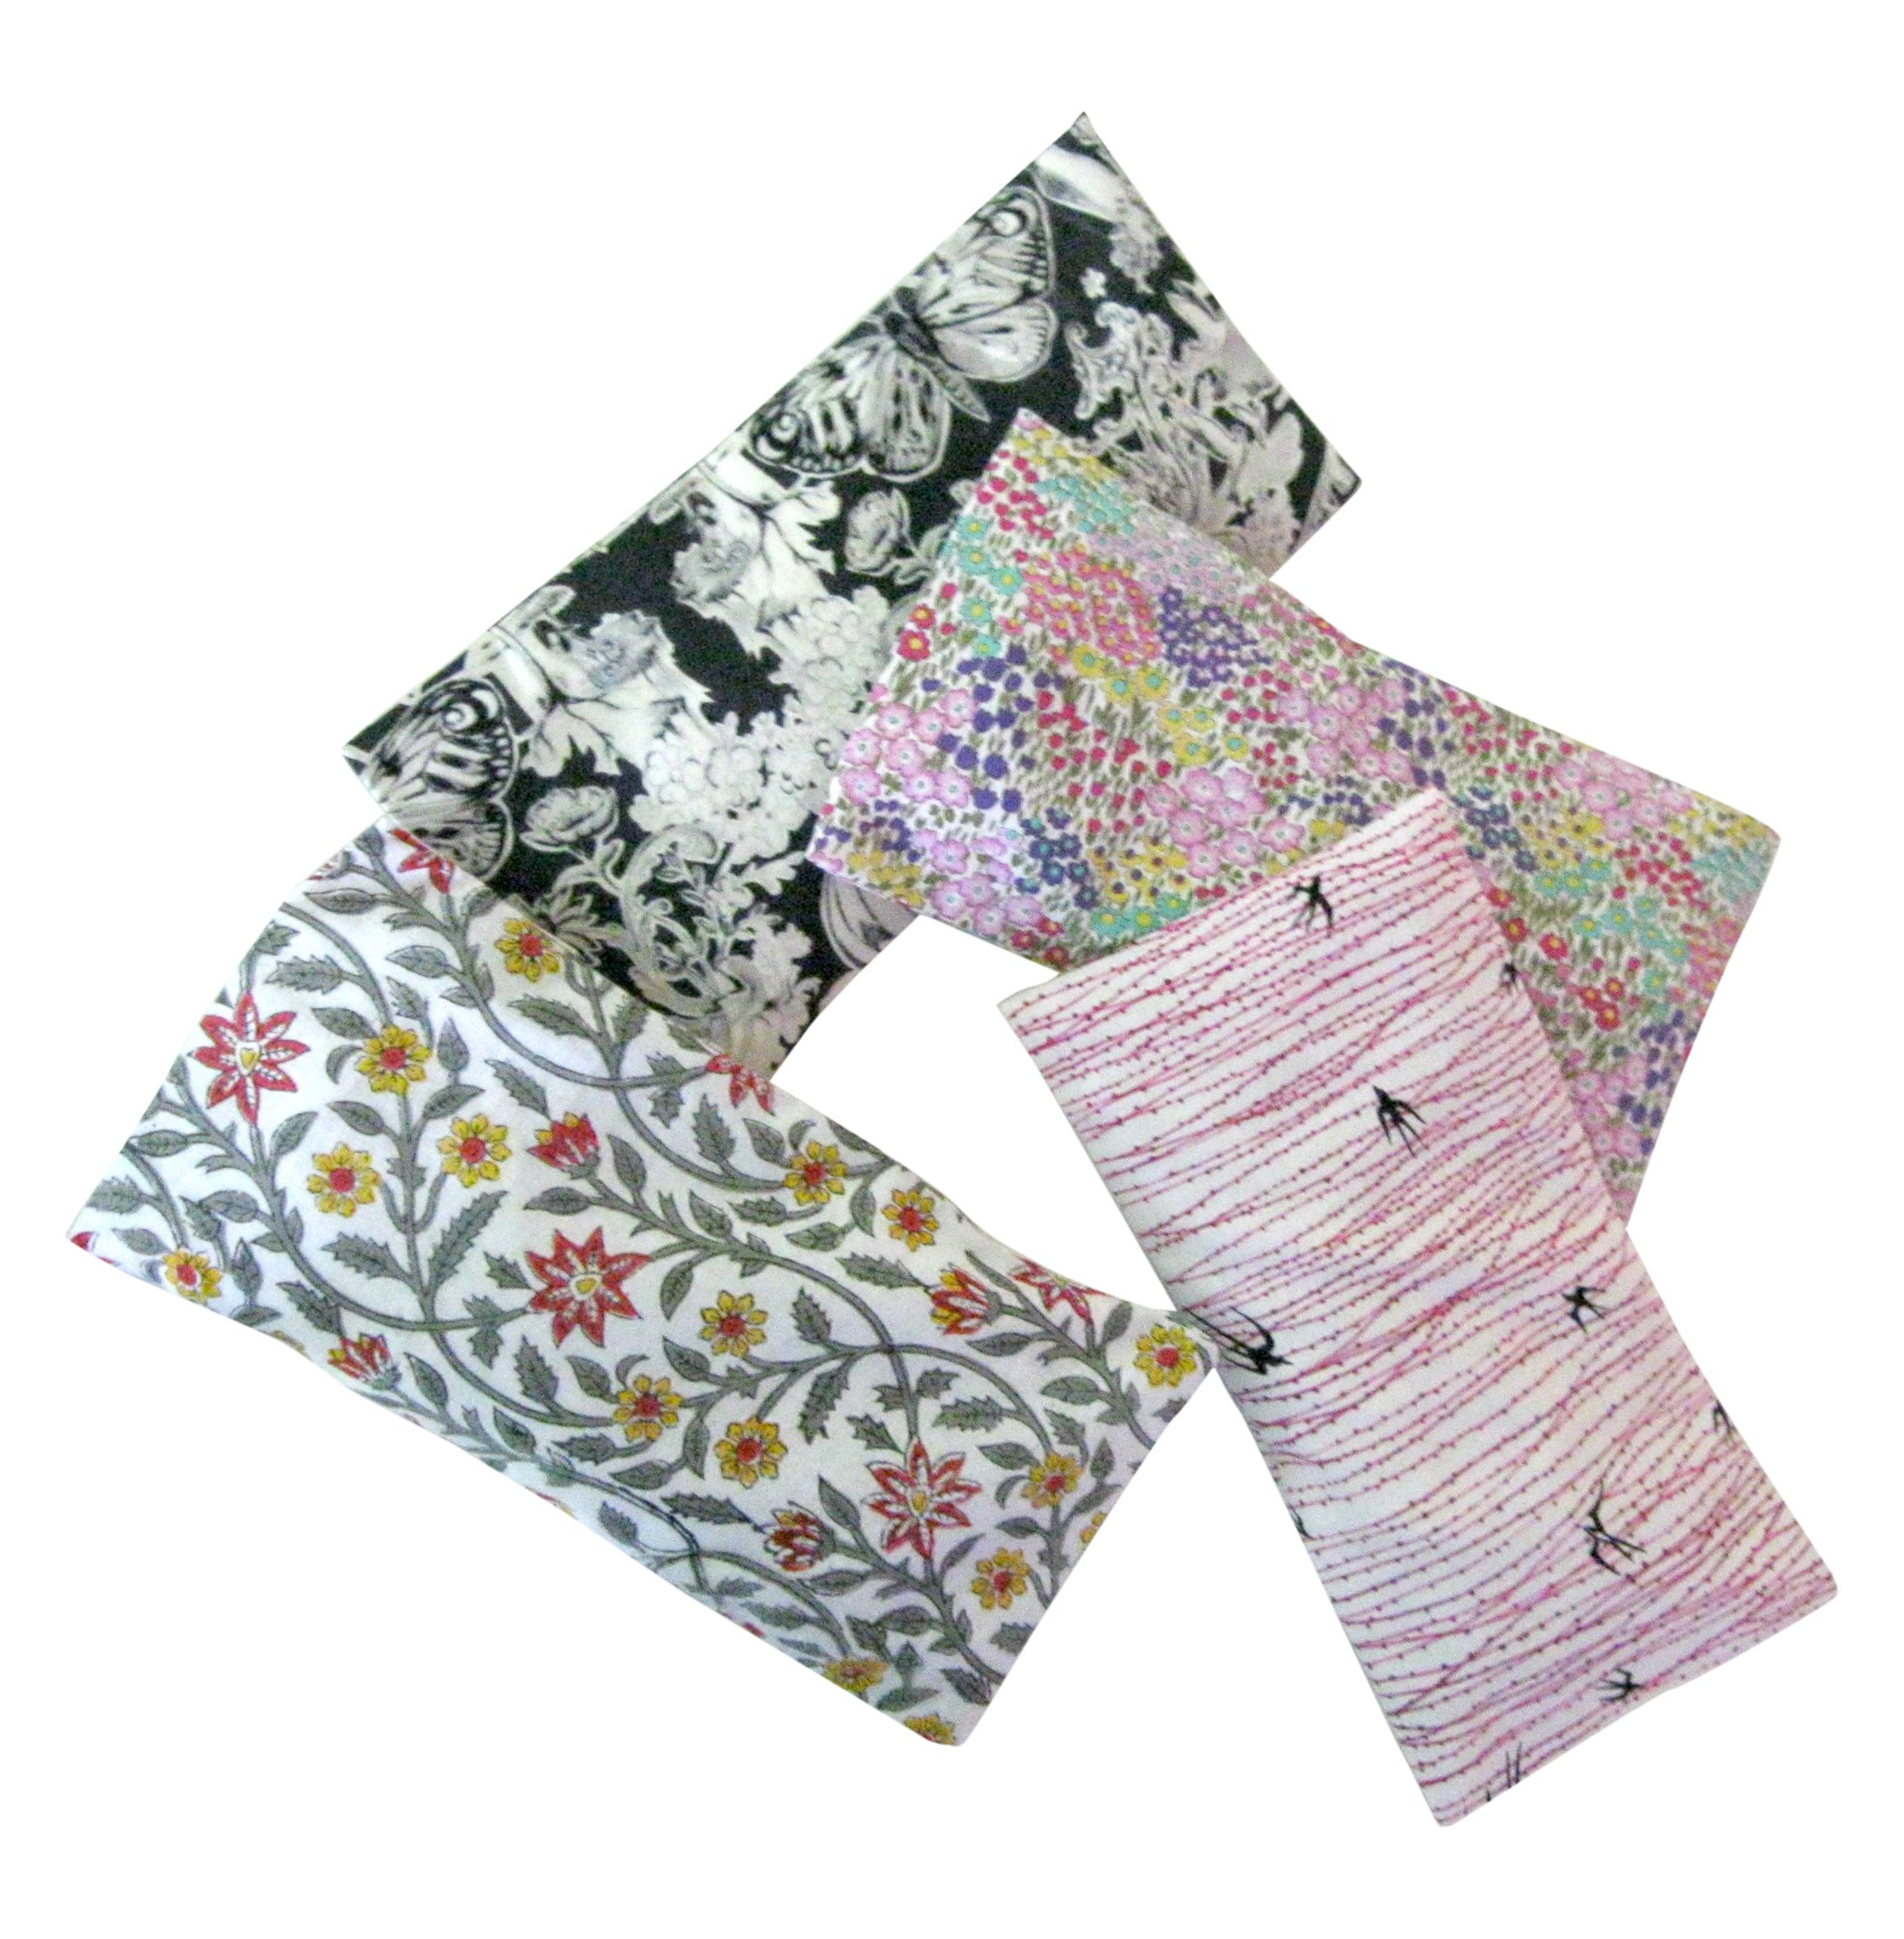 Aromatherapy Eye Pillow - Bundle of (4) - 4.5 x 9 - Organic Lavender Chamomile Flax Cotton - Removable Cover Washable - pink gray black birds flowers by Peacegoods (Image #1)